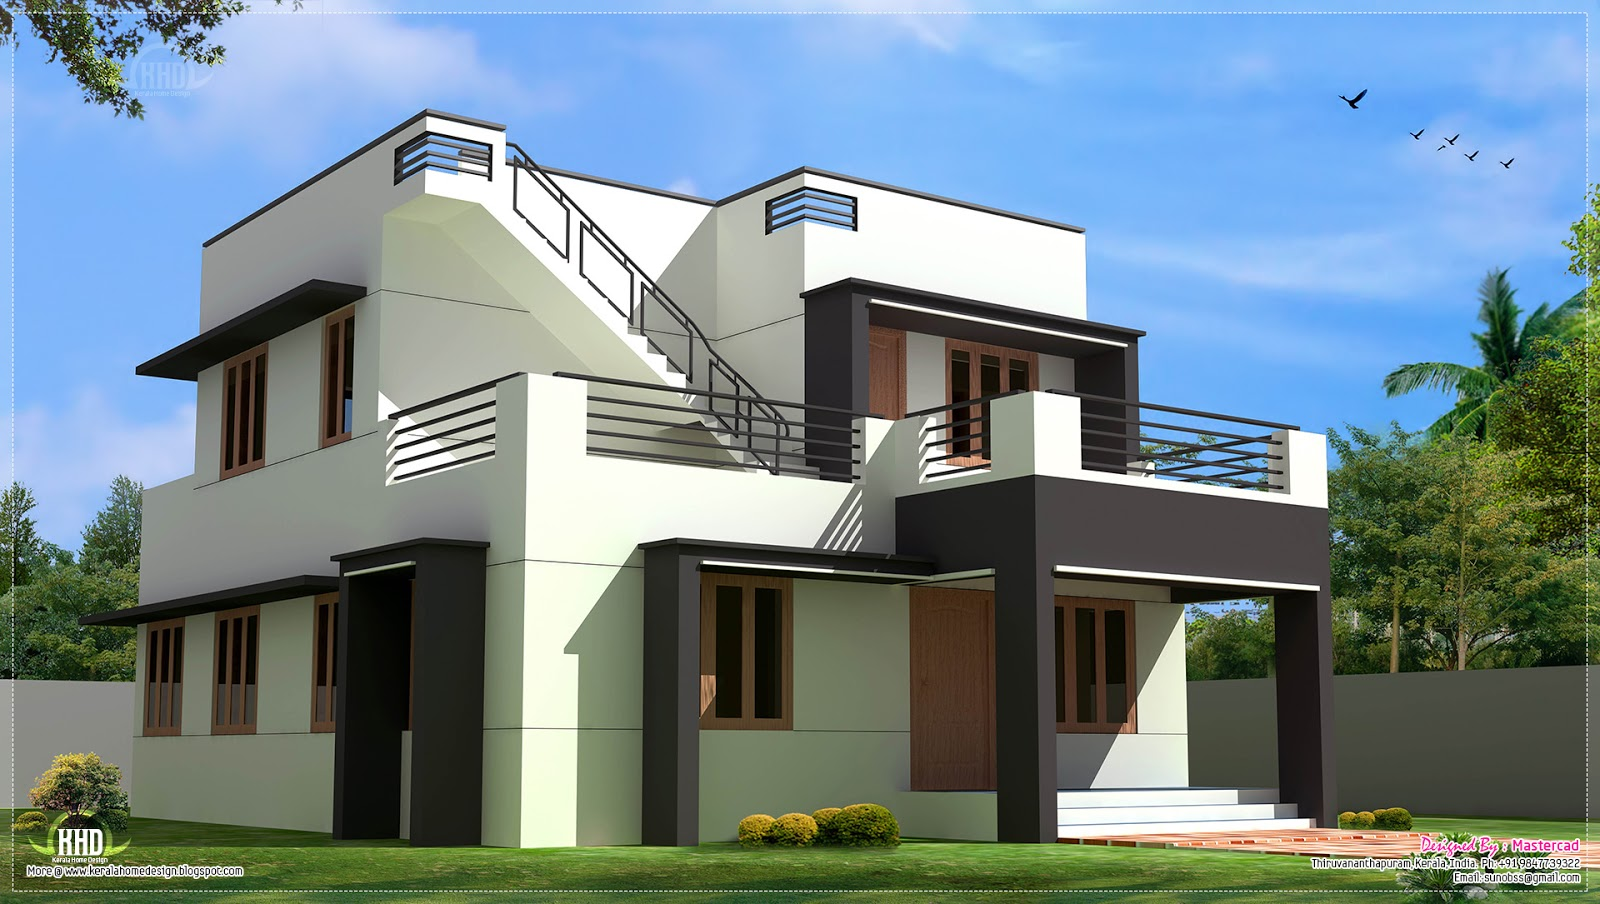 Modern house design in 1700 kerala home design for Best home plans 2015